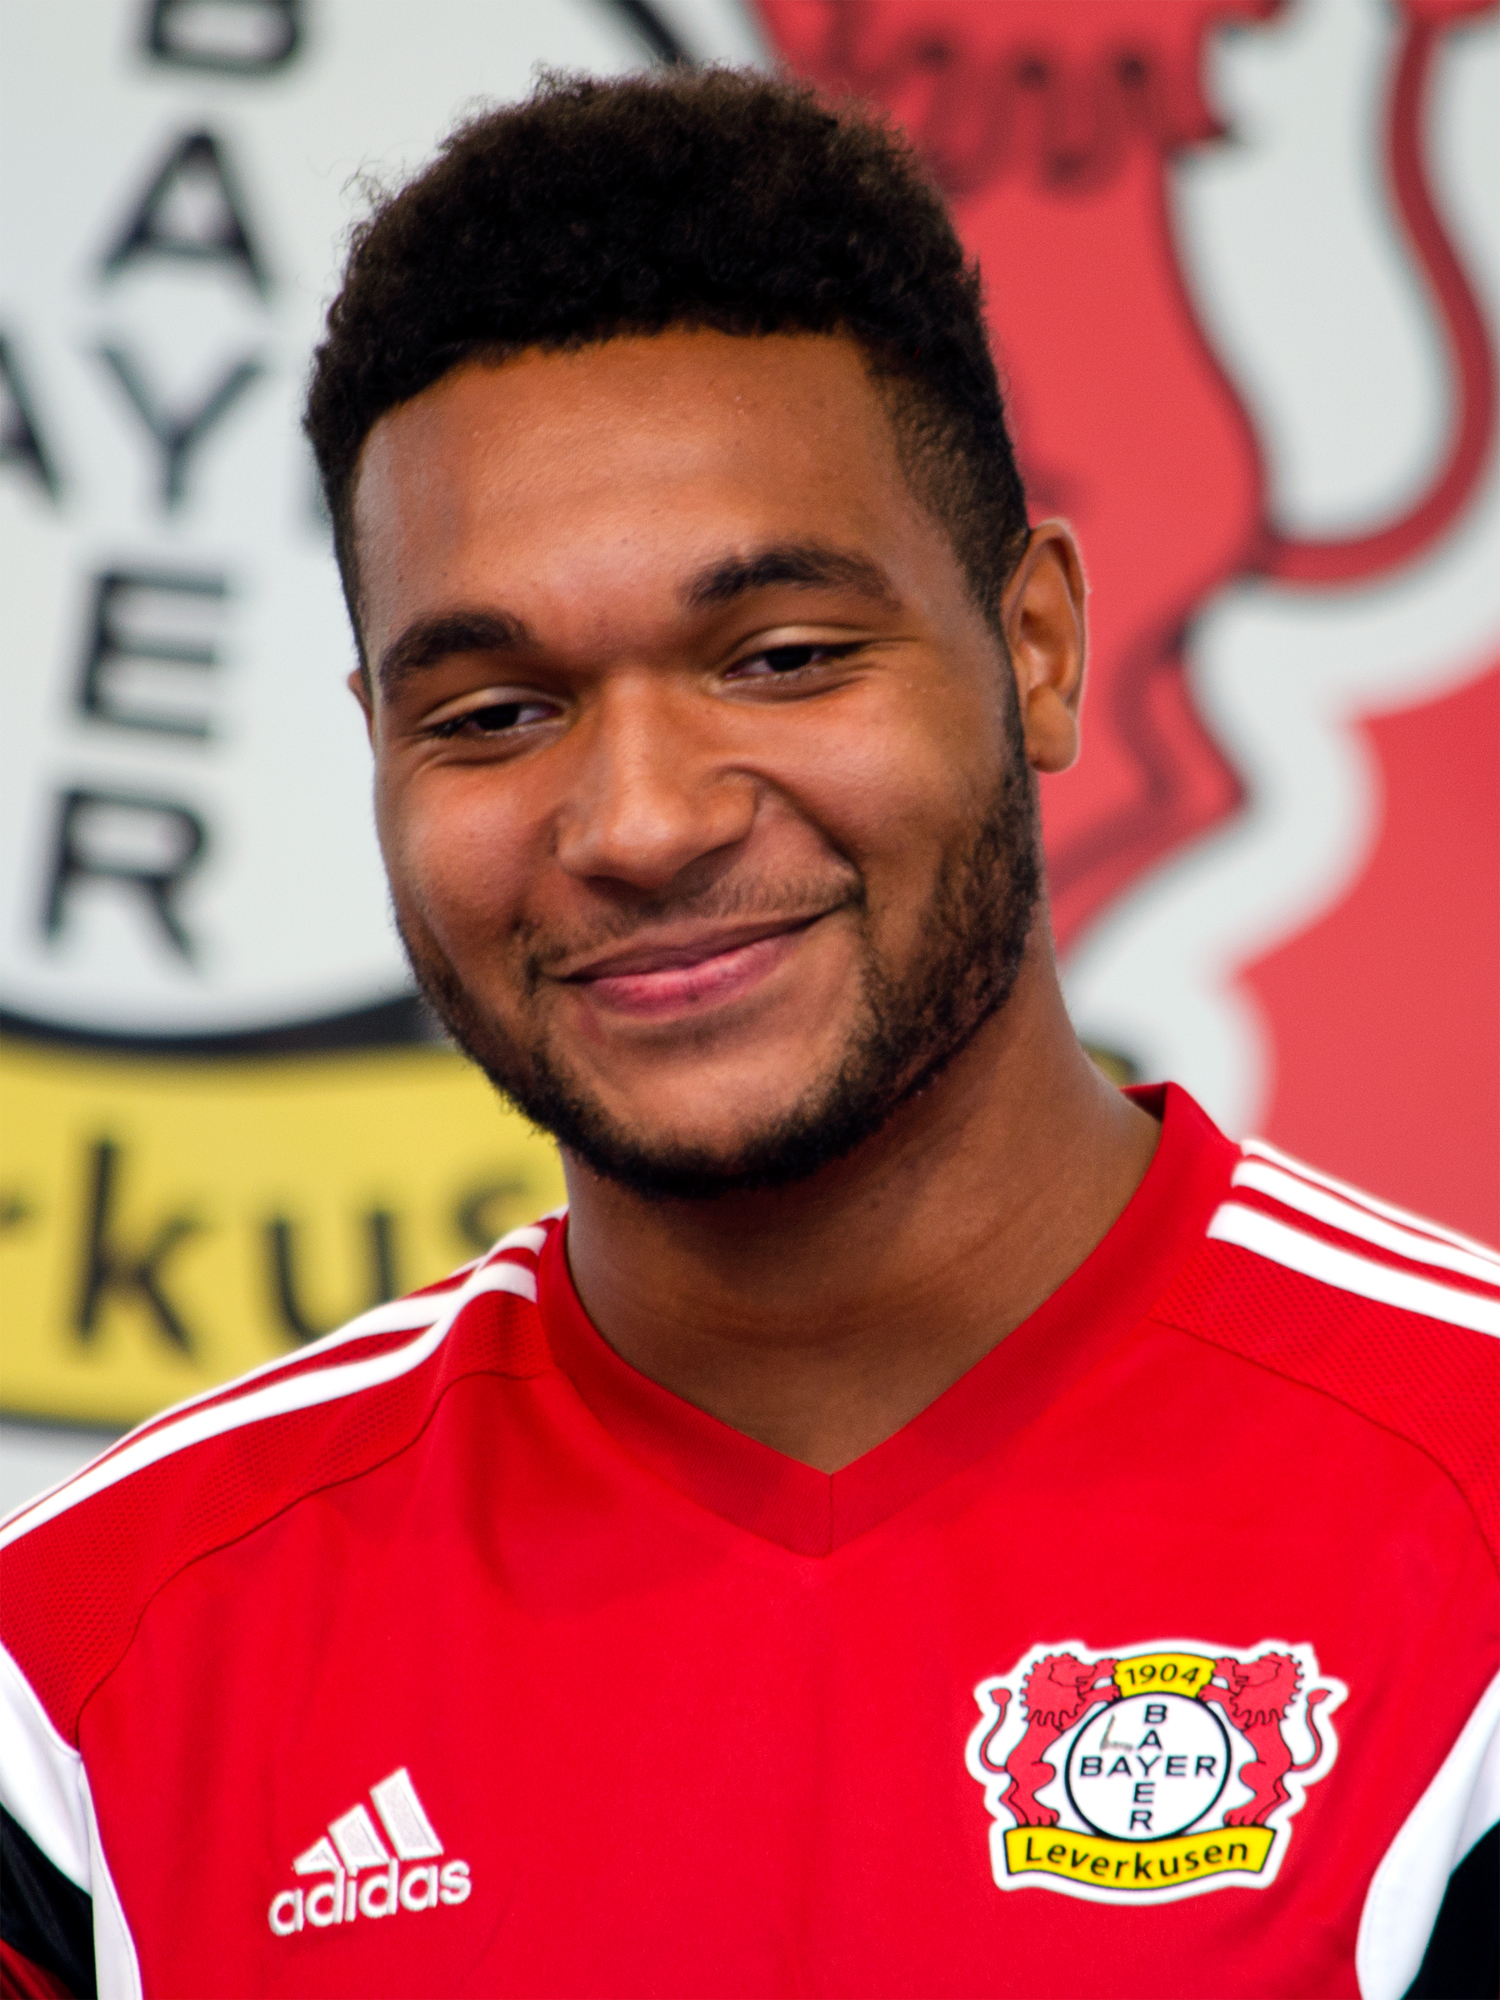 The 22-year old son of father Aquilas Tah and mother Anja Tah Jonathan Tah in 2019 photo. Jonathan Tah earned a  million dollar salary - leaving the net worth at  million in 2019